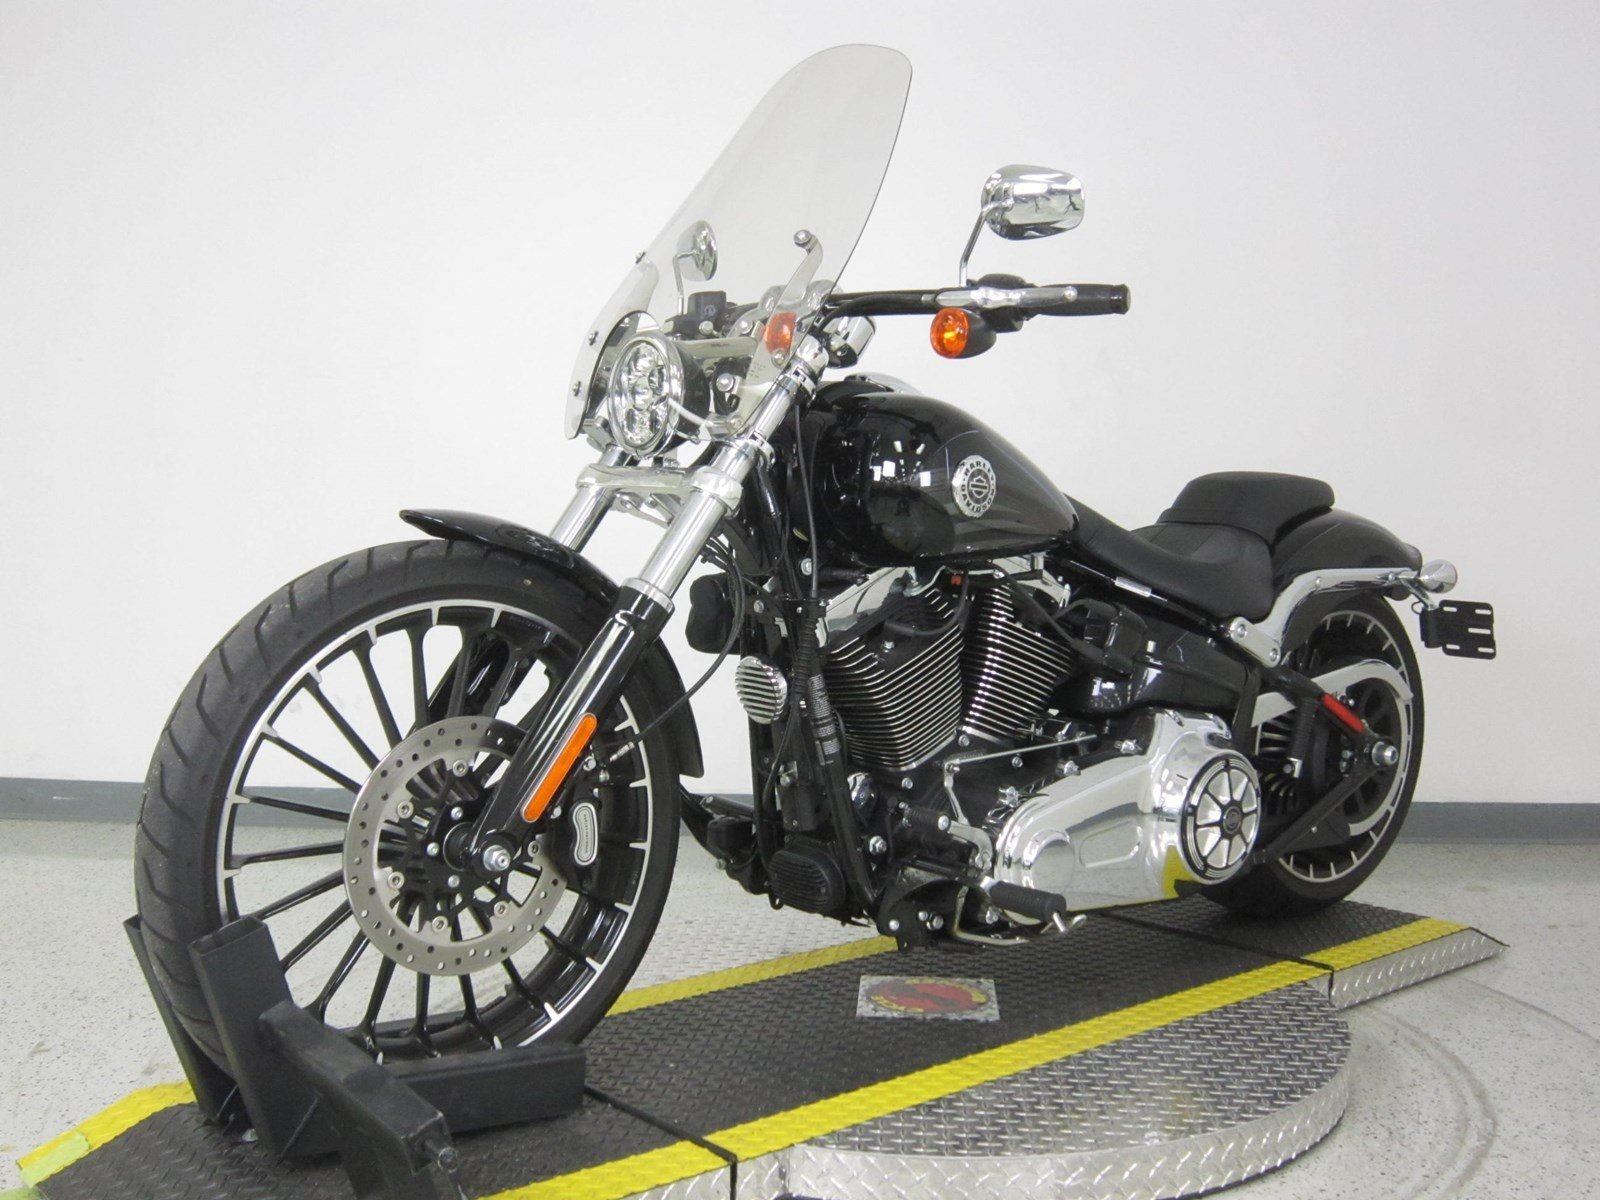 Pre Owned 2017 Harley Davidson Softail Breakout FXSB Softail in N